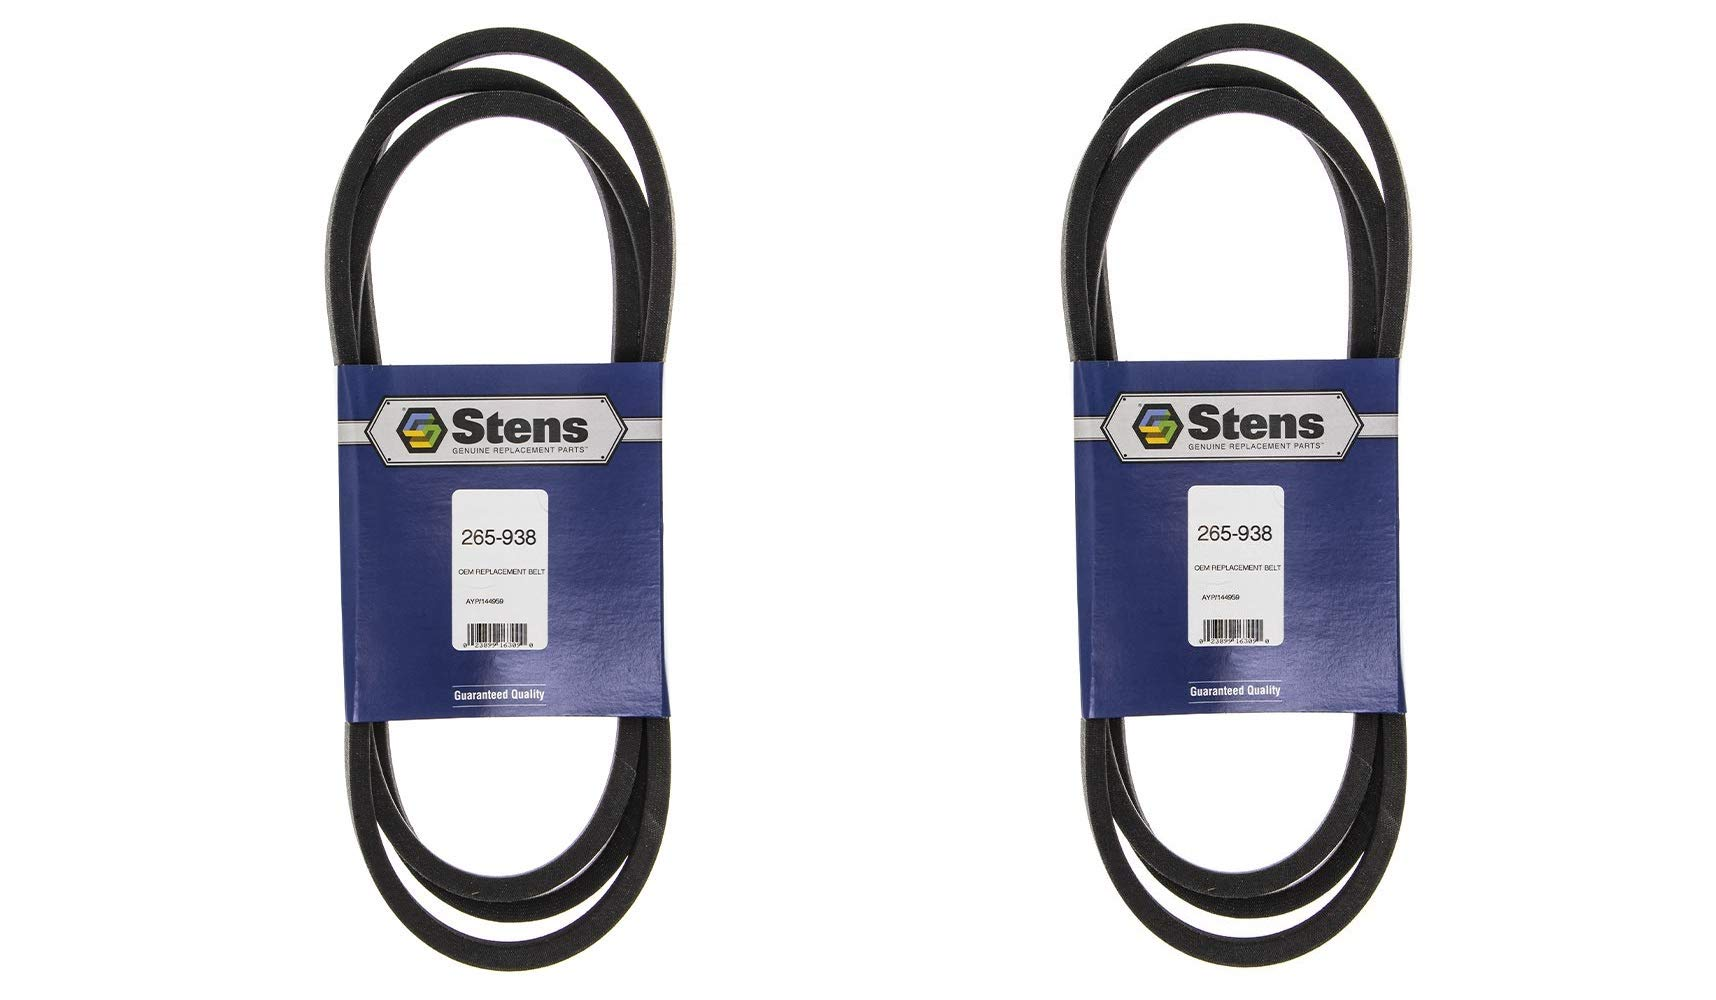 Stens 265-938 Replacement Belt, 95 1/2-Inch (Pack of 2) by Stens